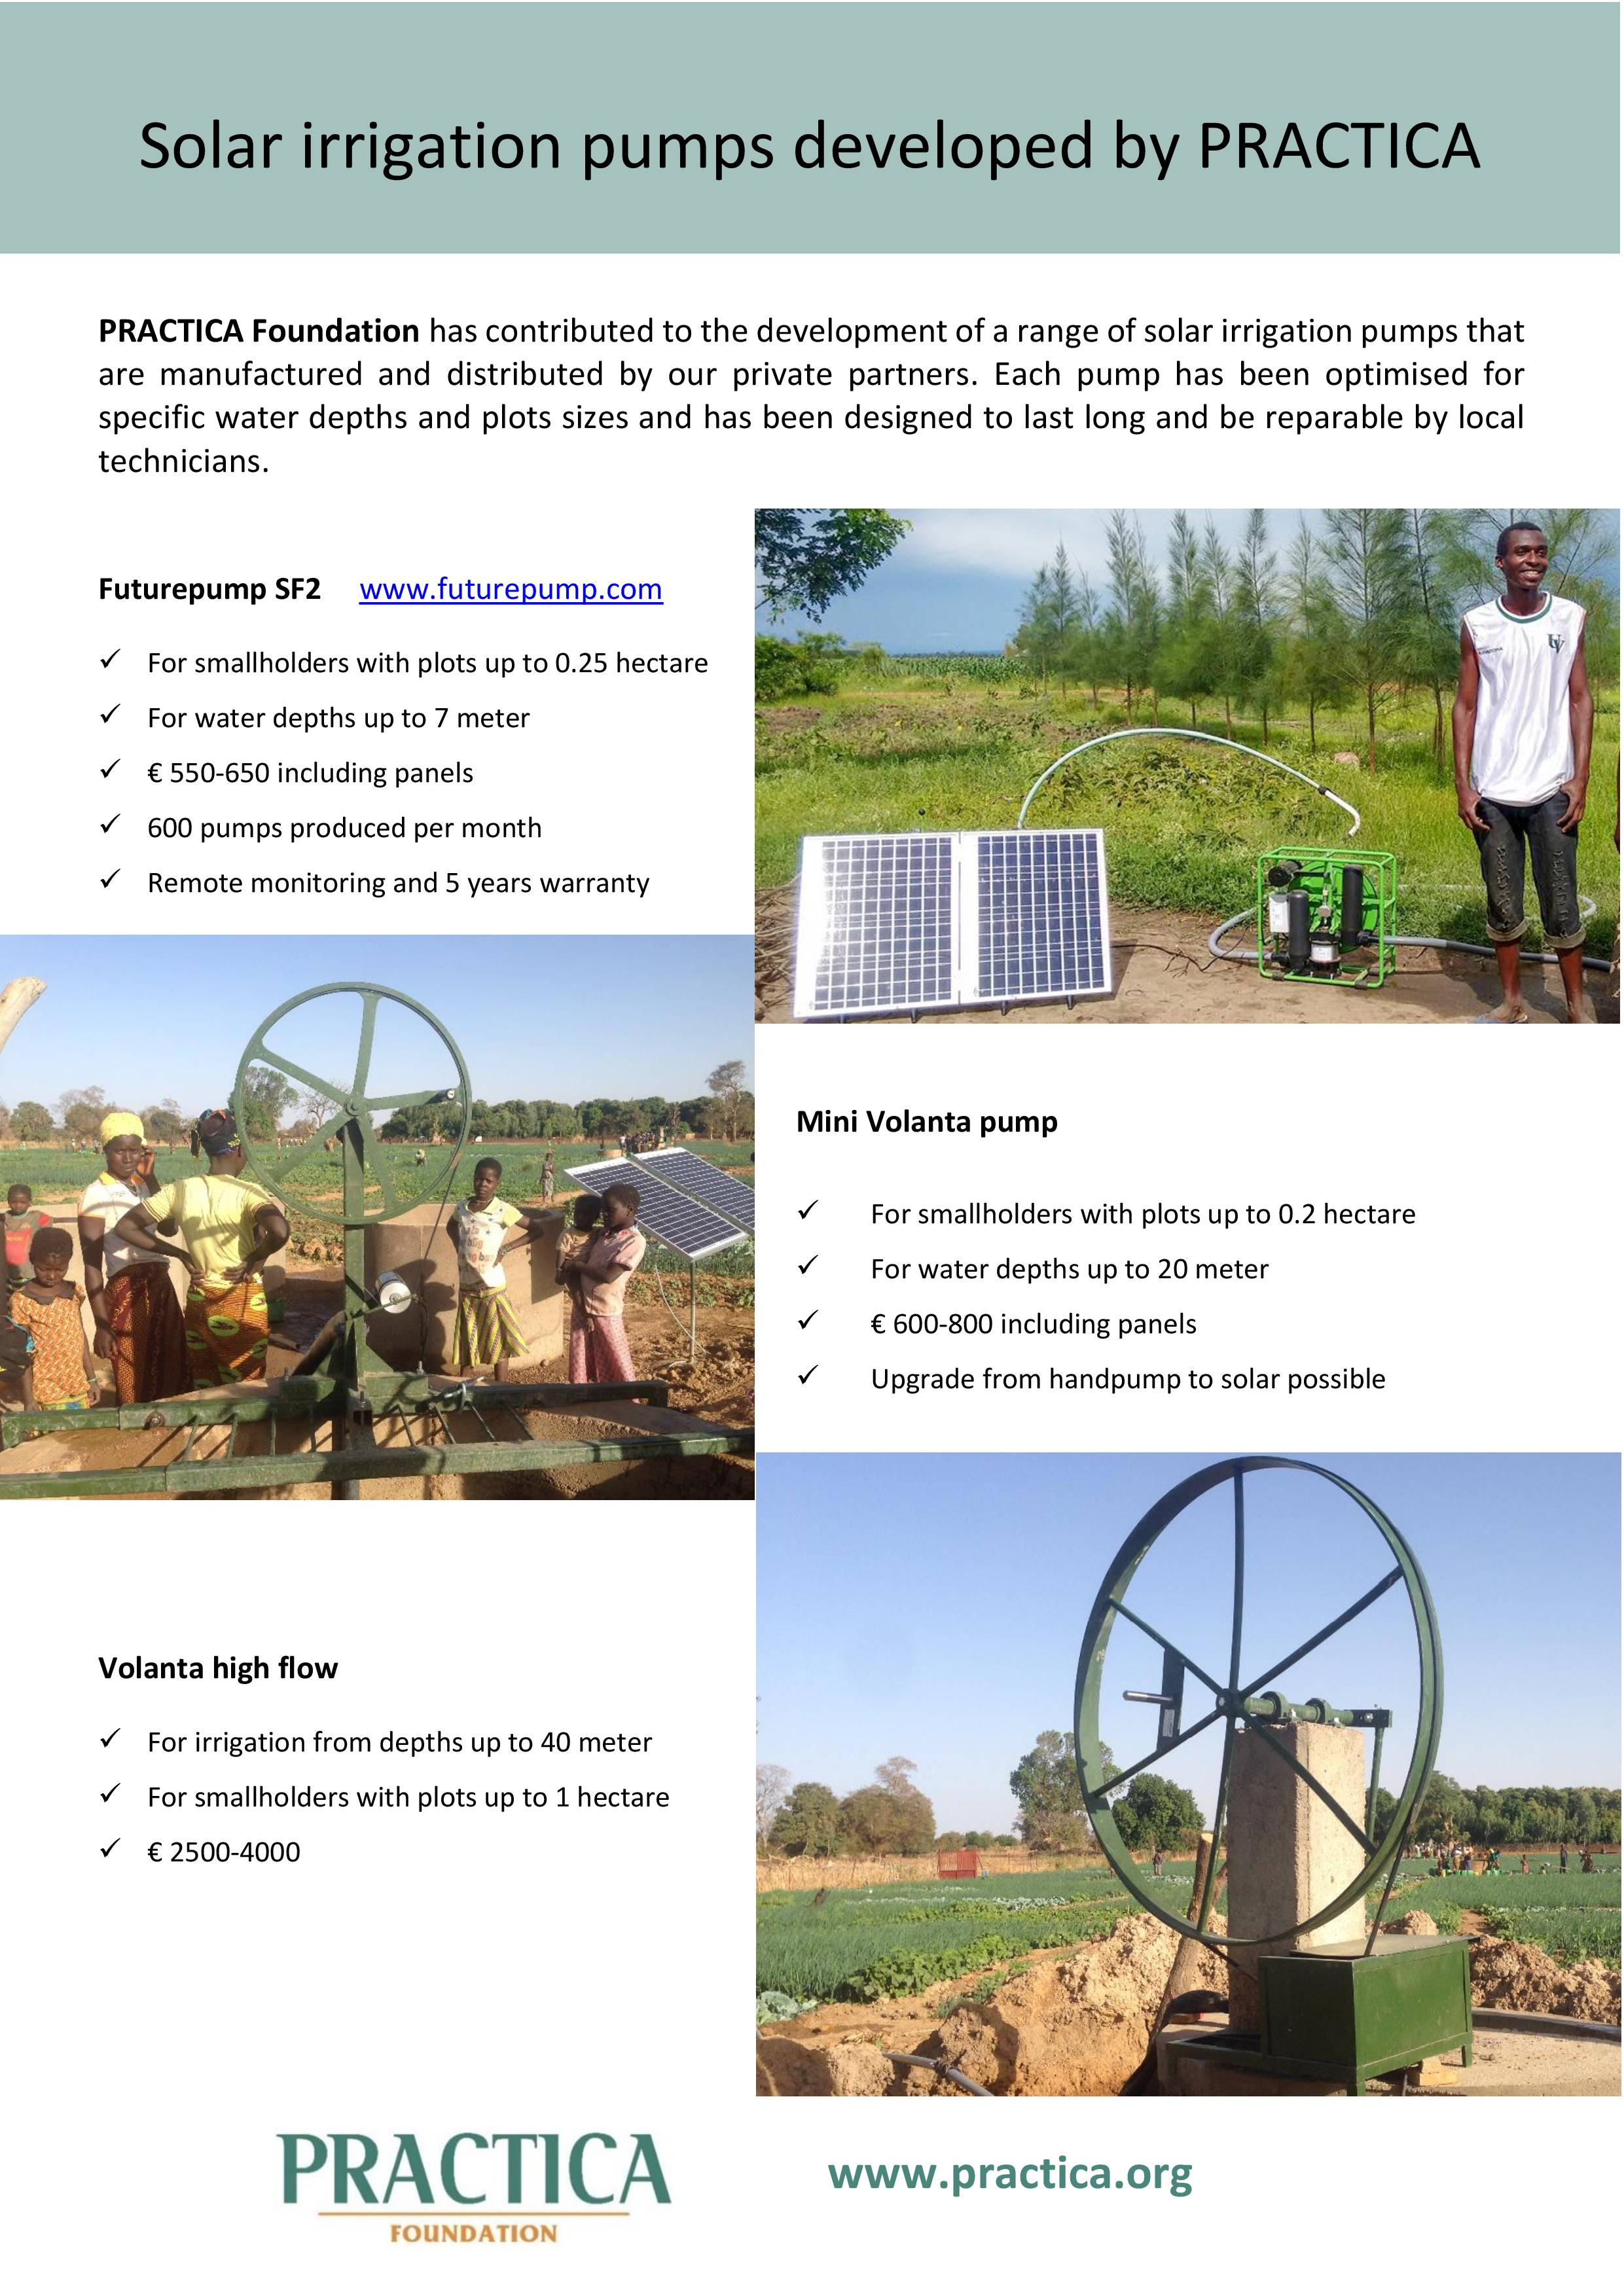 Solar irrigation pumps developed by PRACTICA